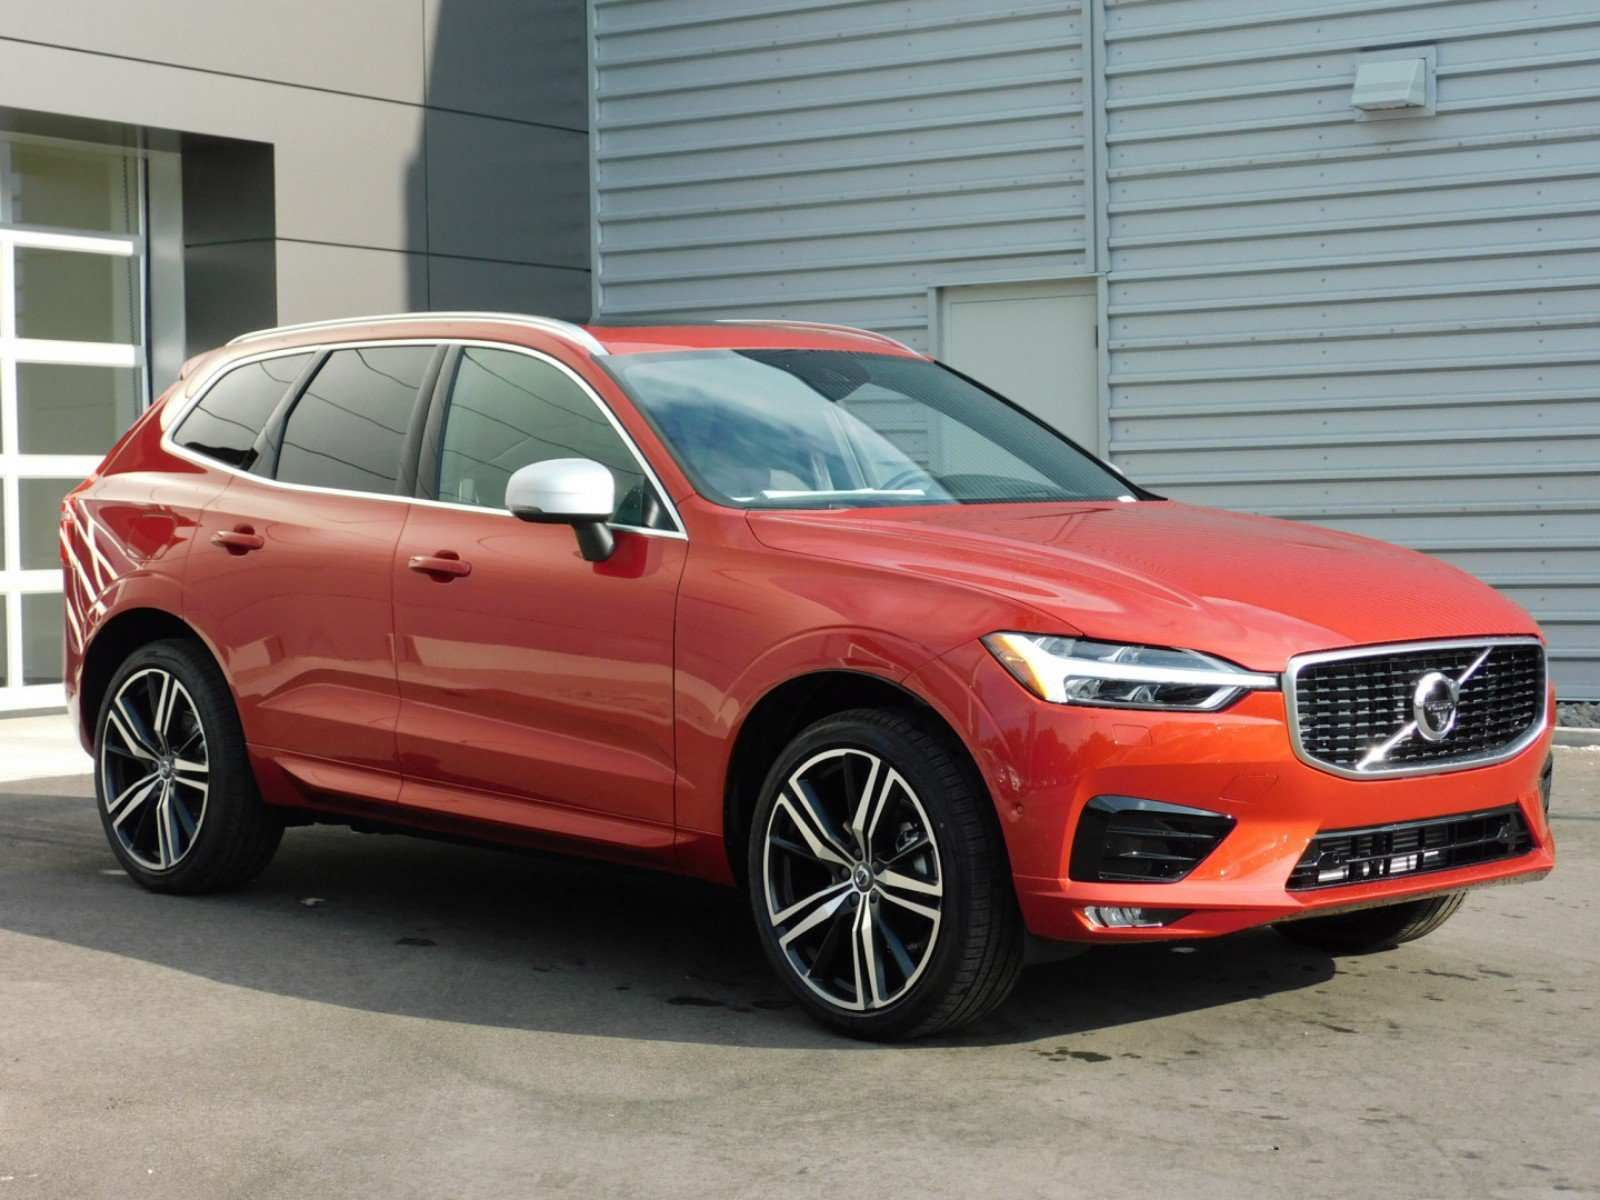 82 Concept of 2019 Volvo Xc60 Overview by 2019 Volvo Xc60